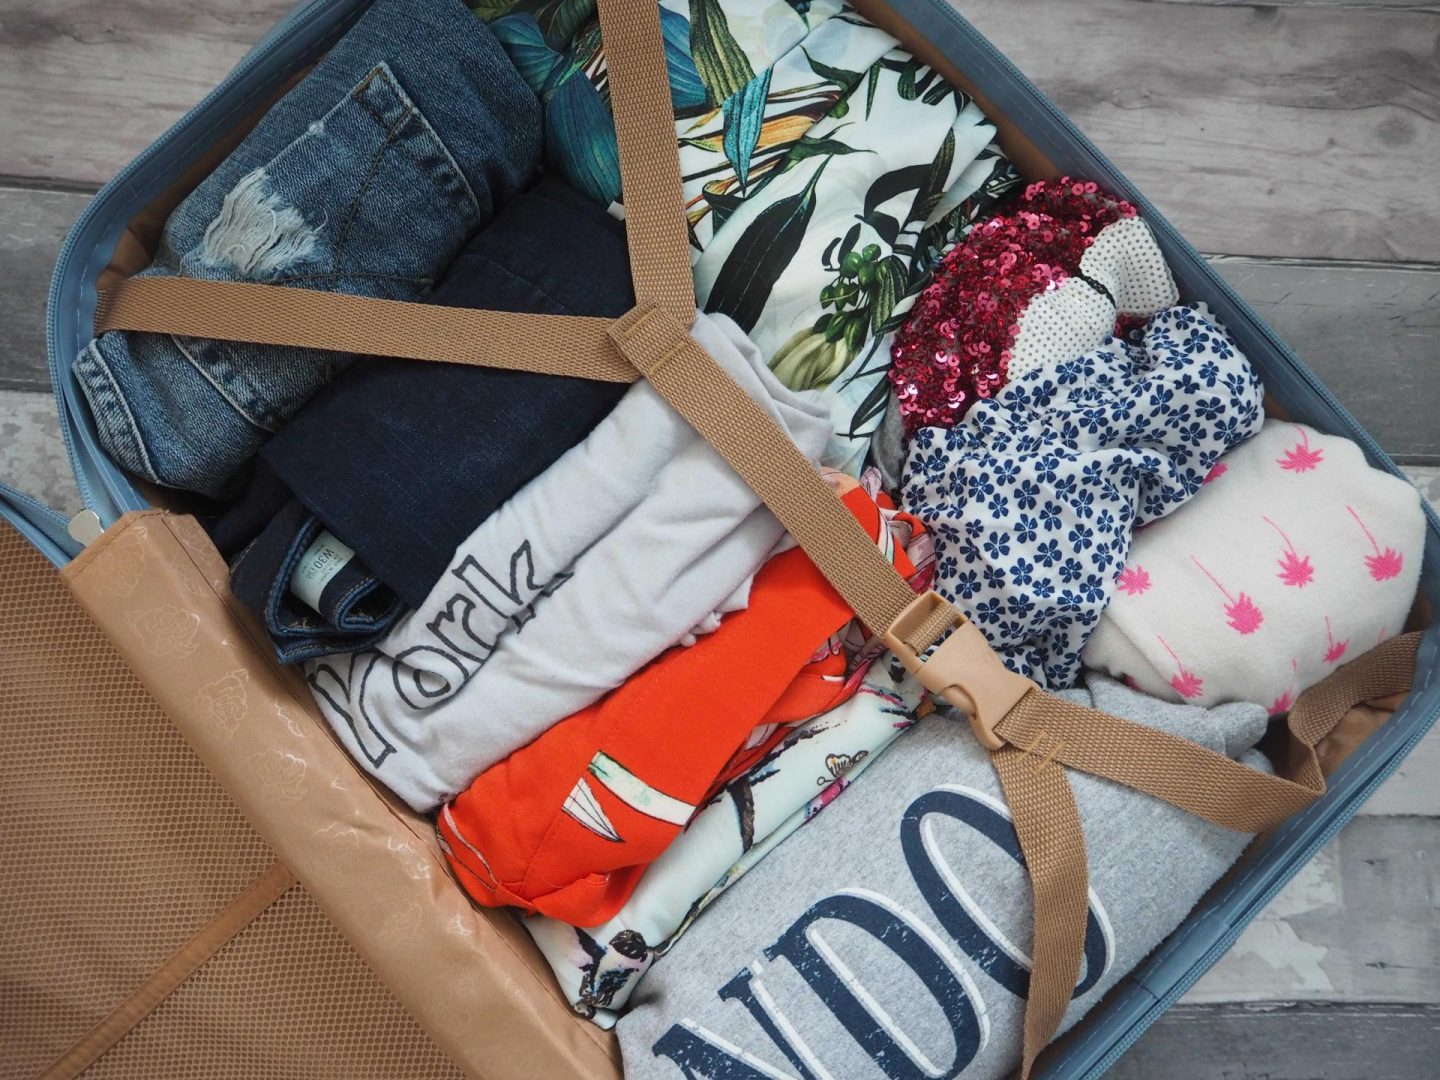 Tips for packing Hand Luggage only, House of Fraser Suitcase - Rachel Nicole UK Blogger 3